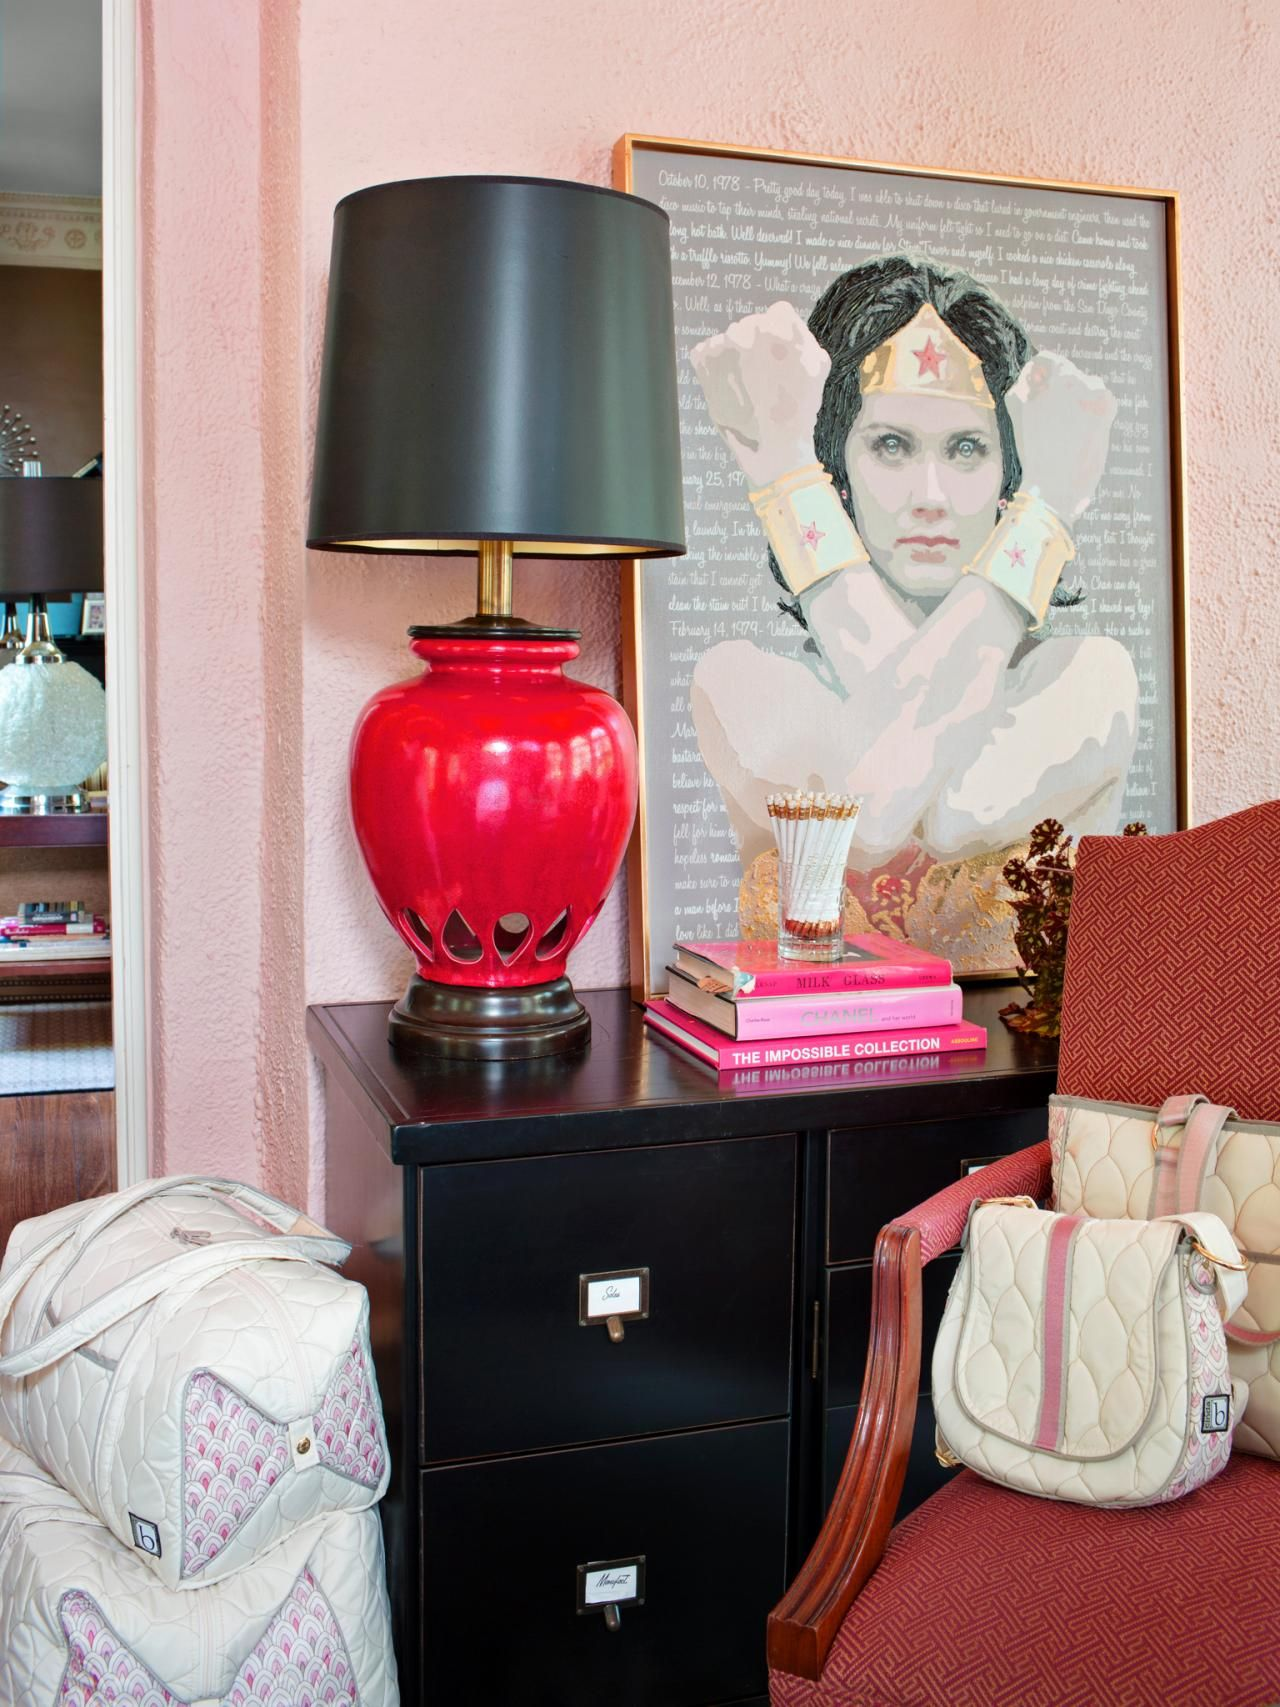 14 Color Palettes That Work | Color Palette and Schemes for Rooms in Your Home | HGTV